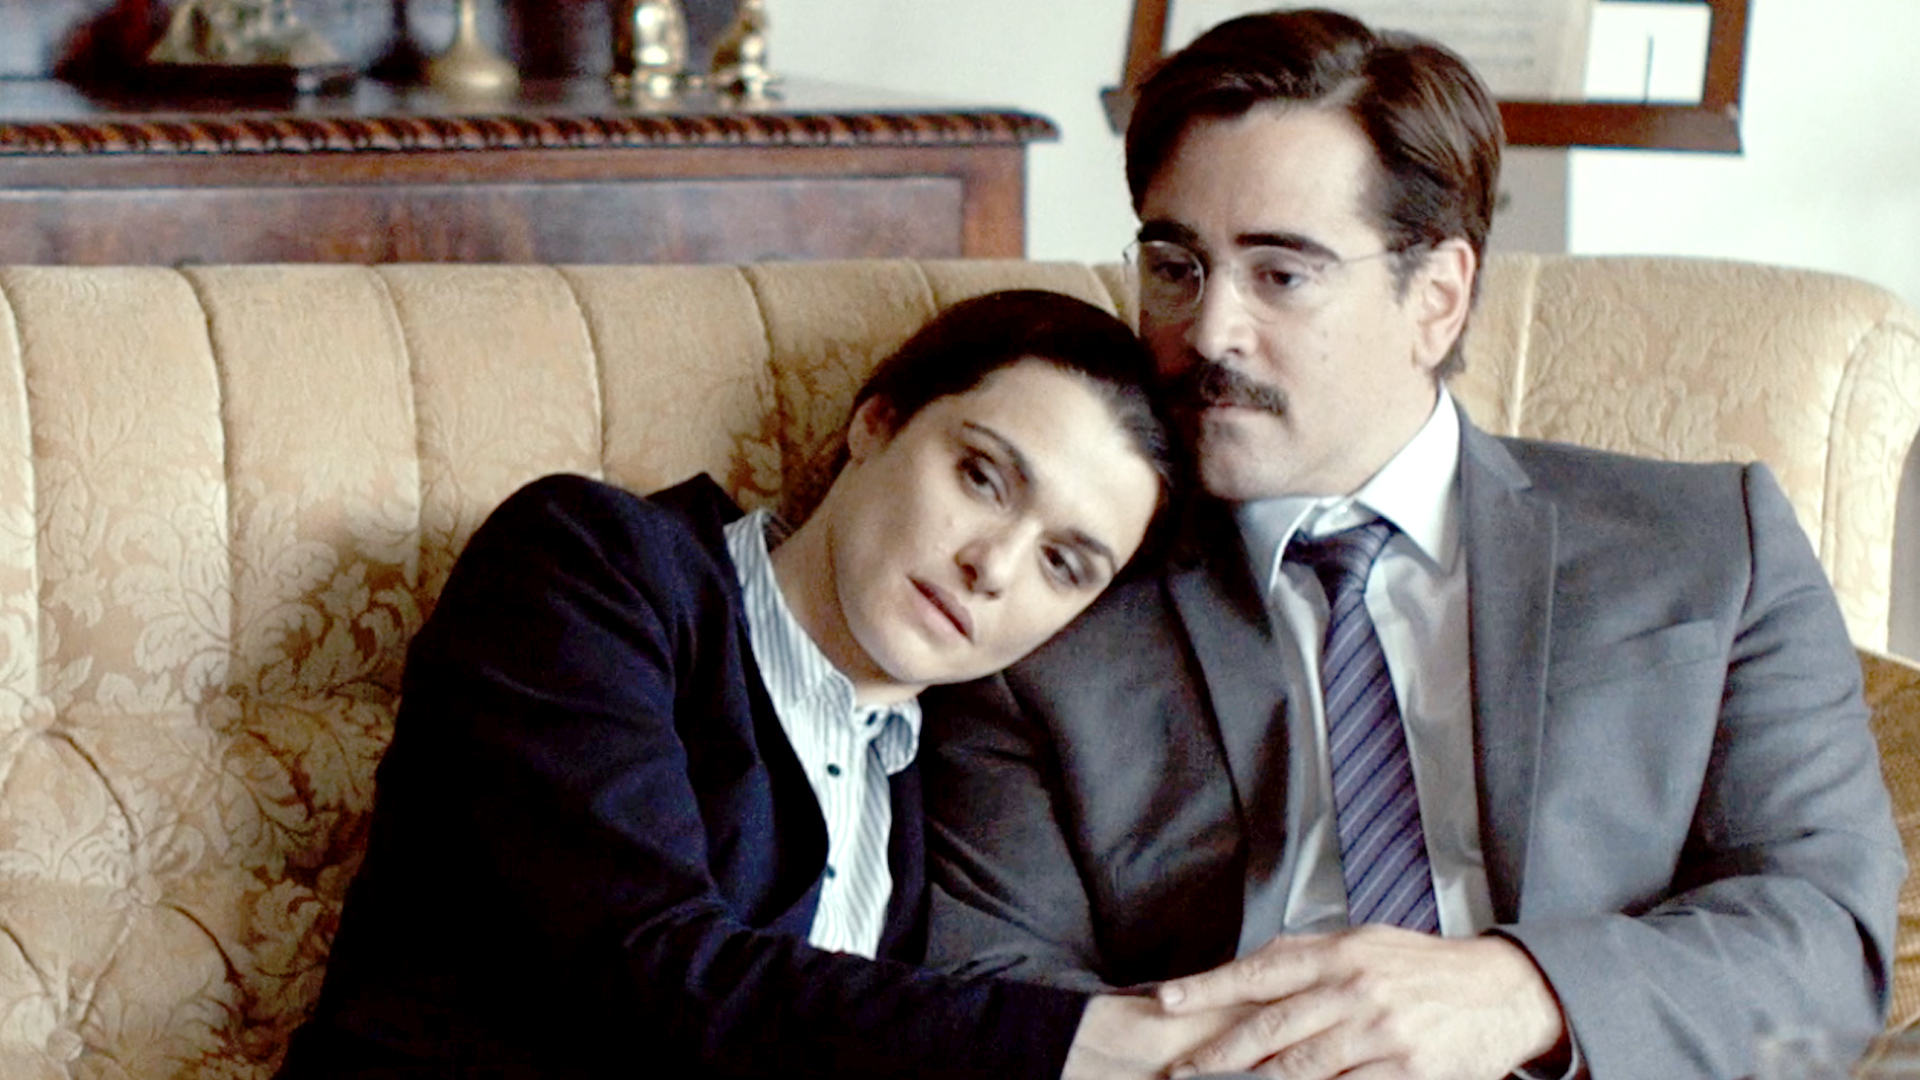 the-lobster-romance-movie